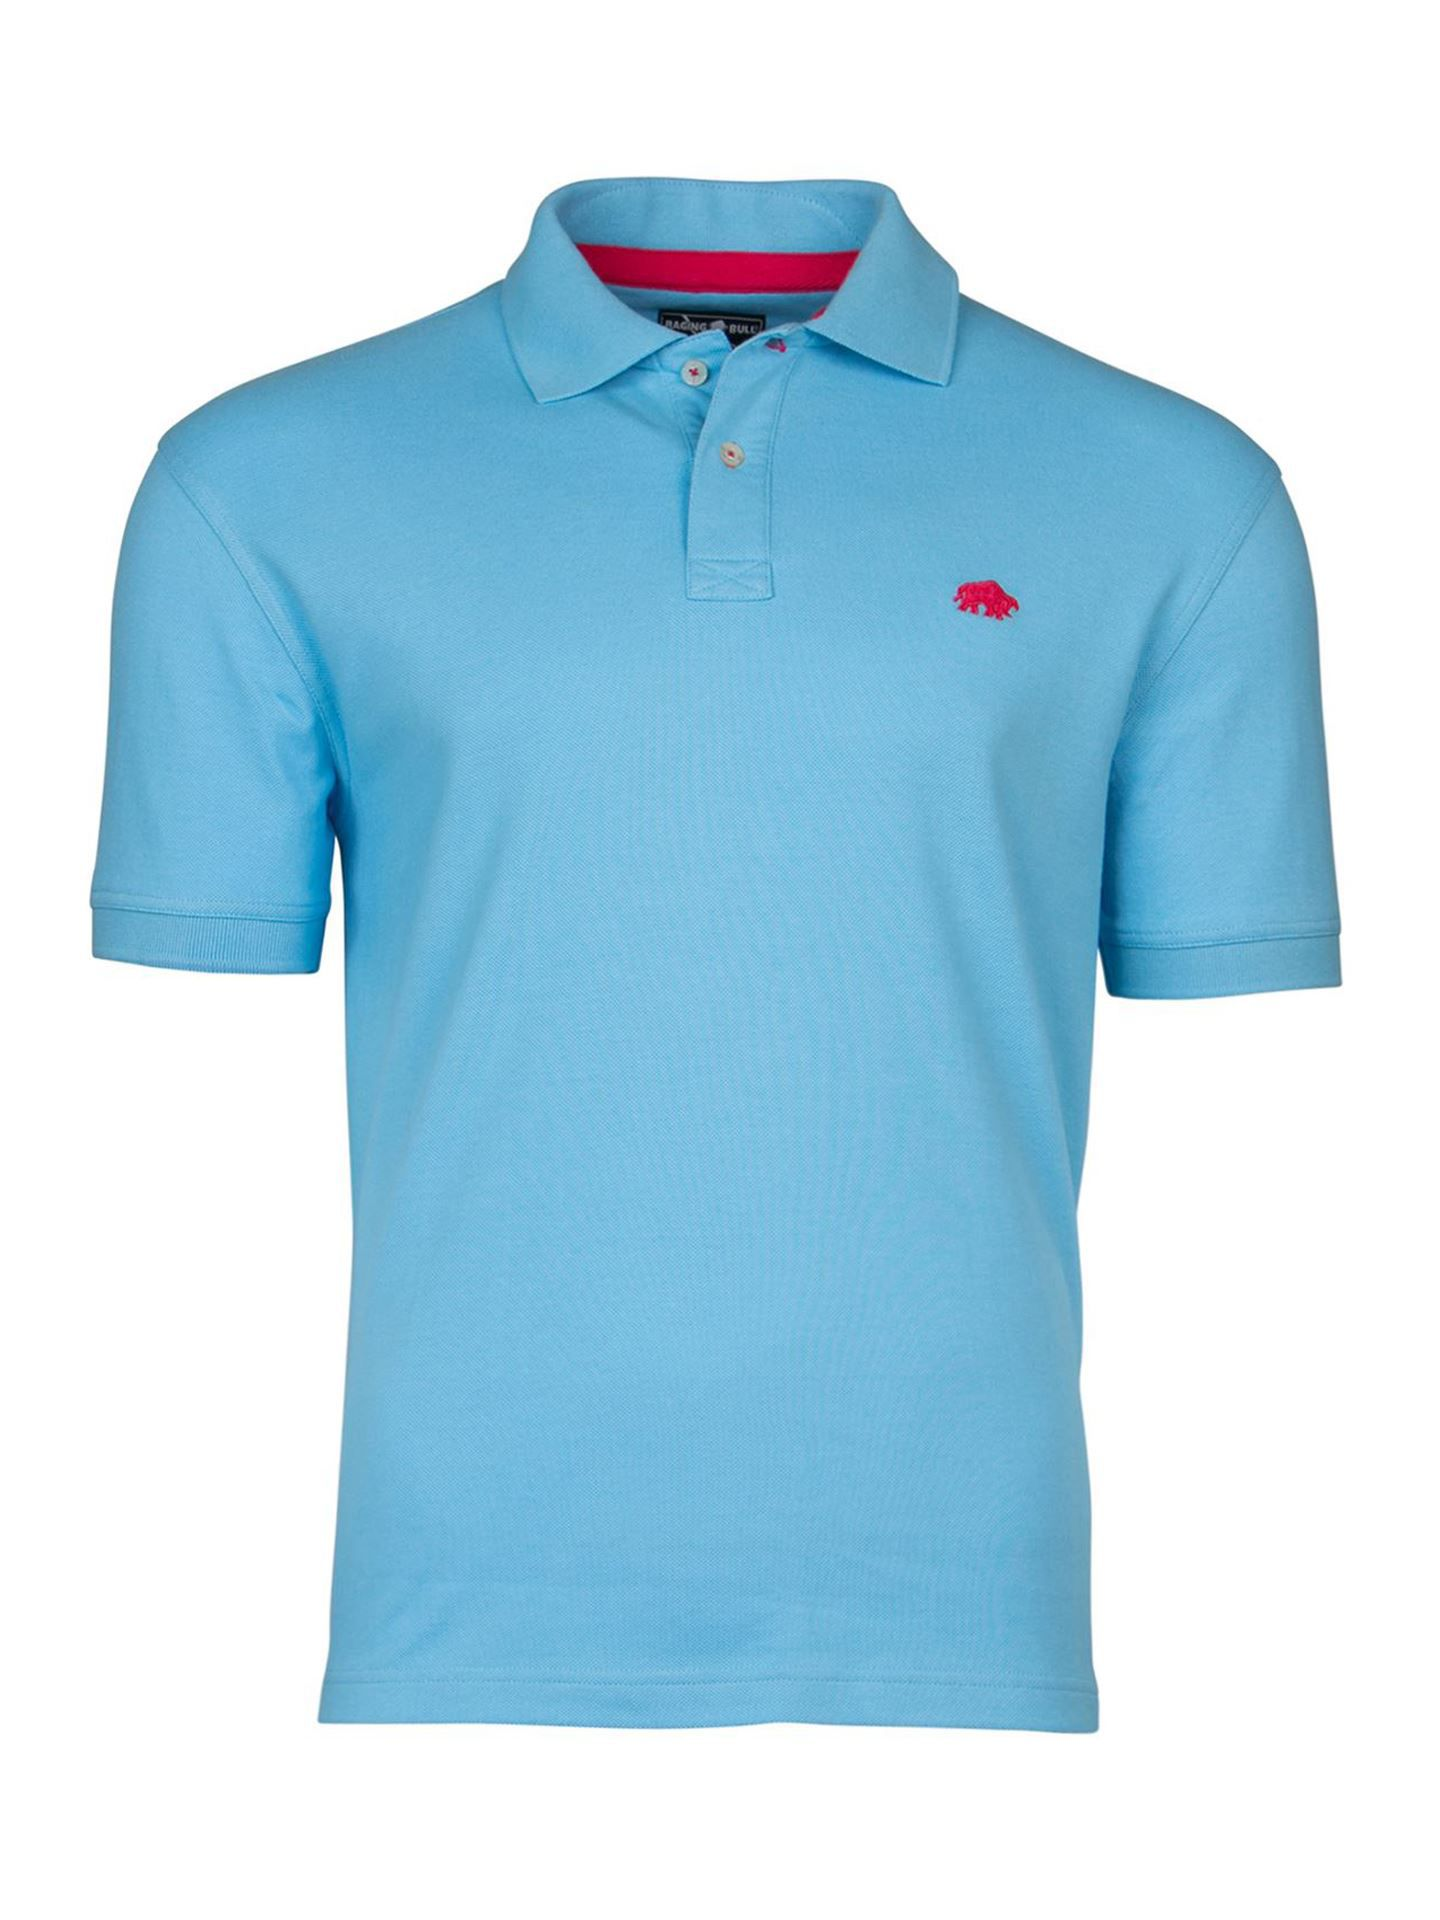 Men's Raging Bull New Signature Polo, Light Blue